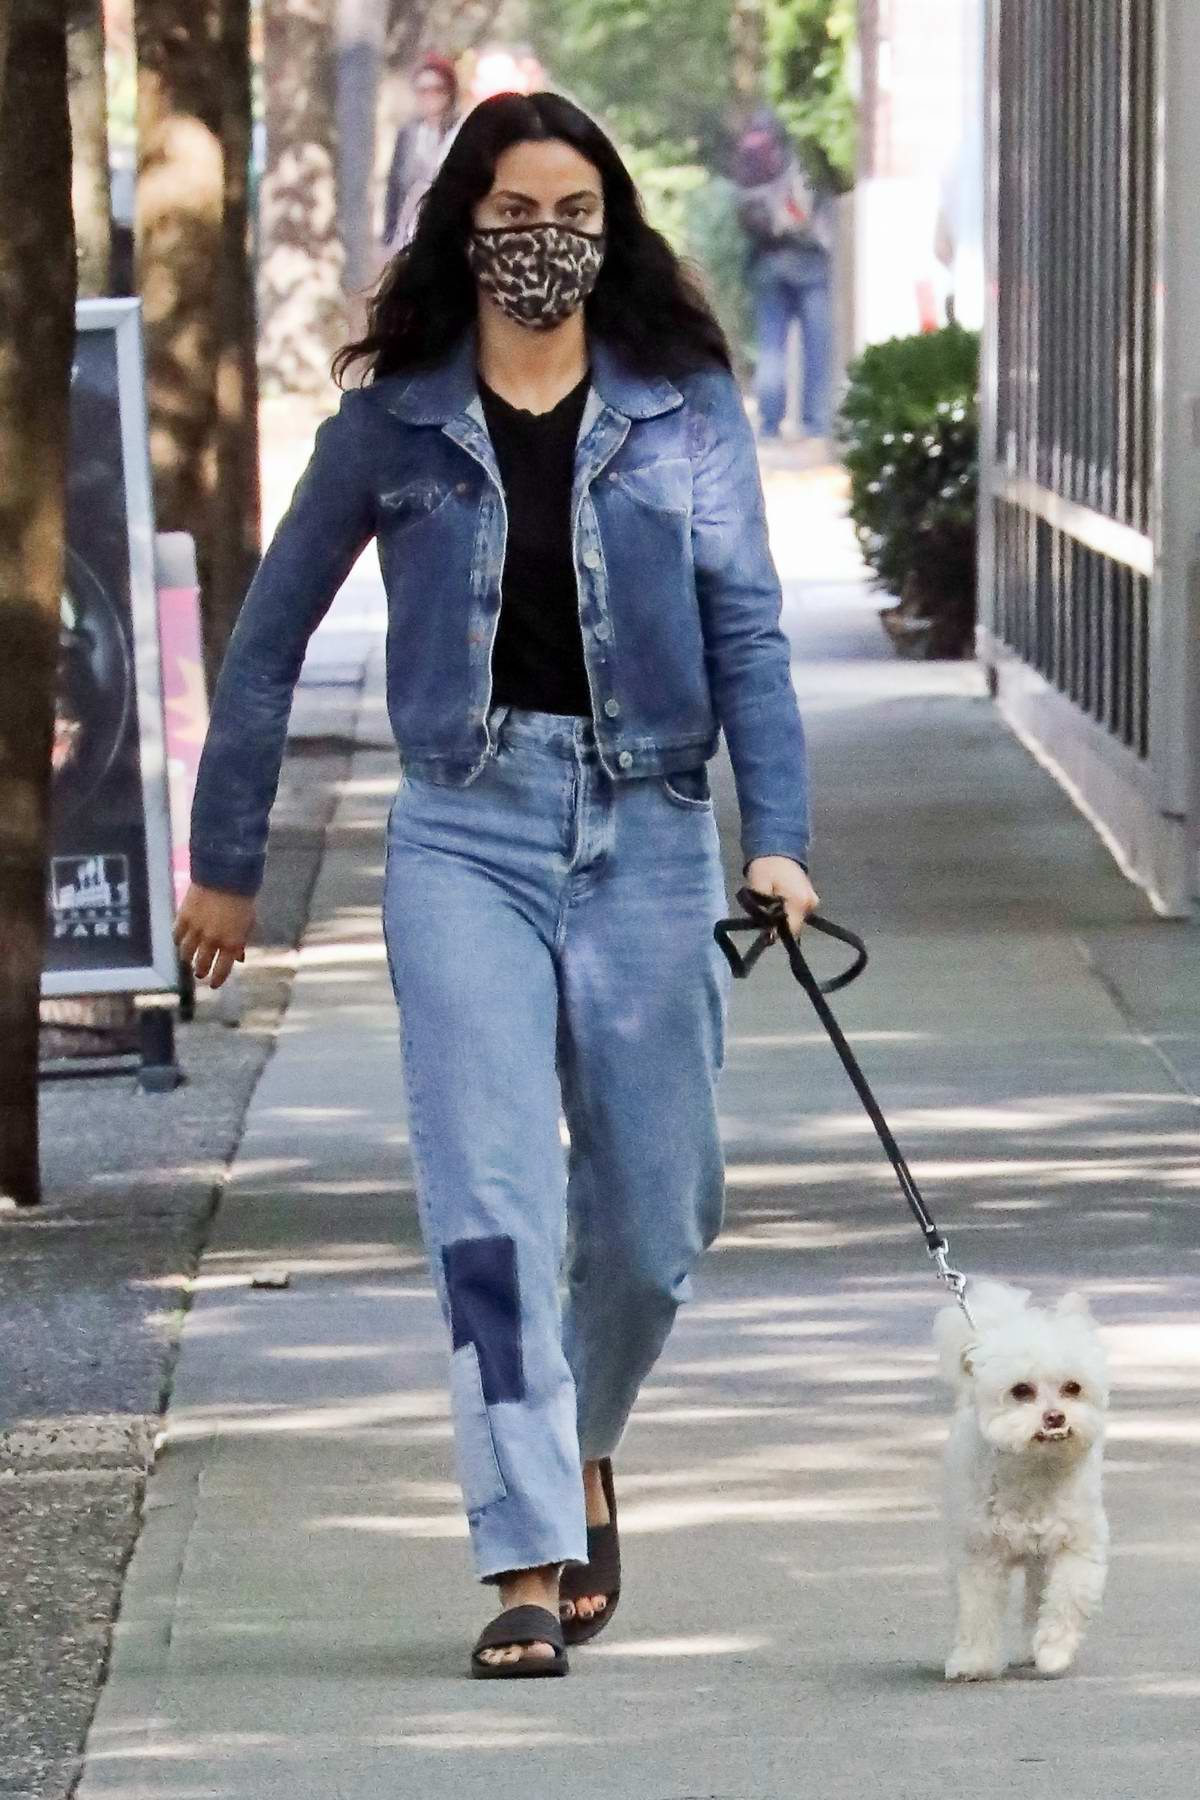 Camila Mendes dons double denim as she takes her dog Truffle for a walk in Vancouver, Canada